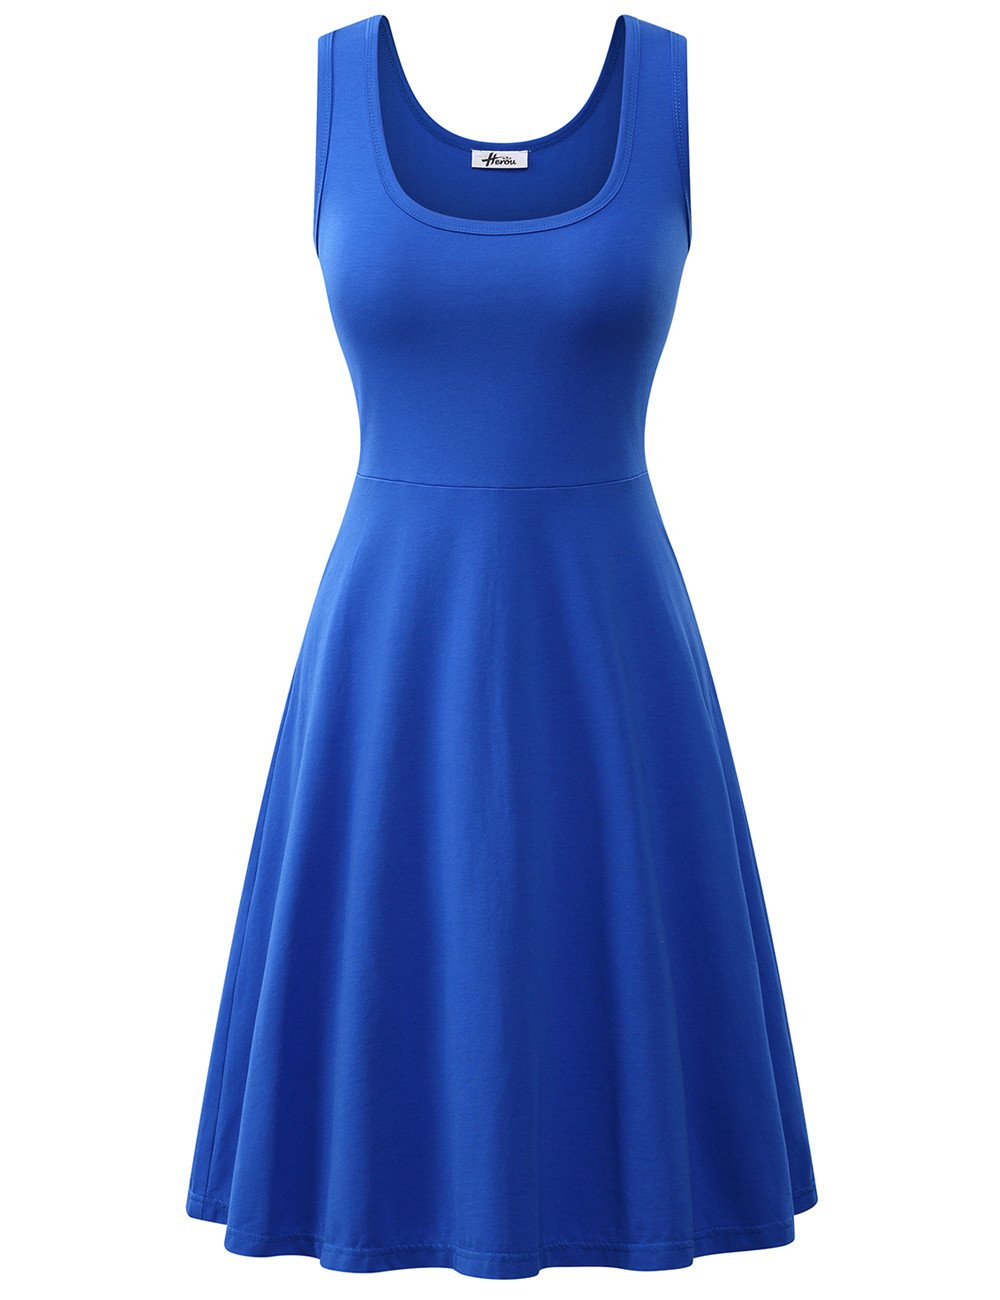 Available at Amazon: Herou Women Summer Casual Sleeveless Cotton A-Line Sun Dresses